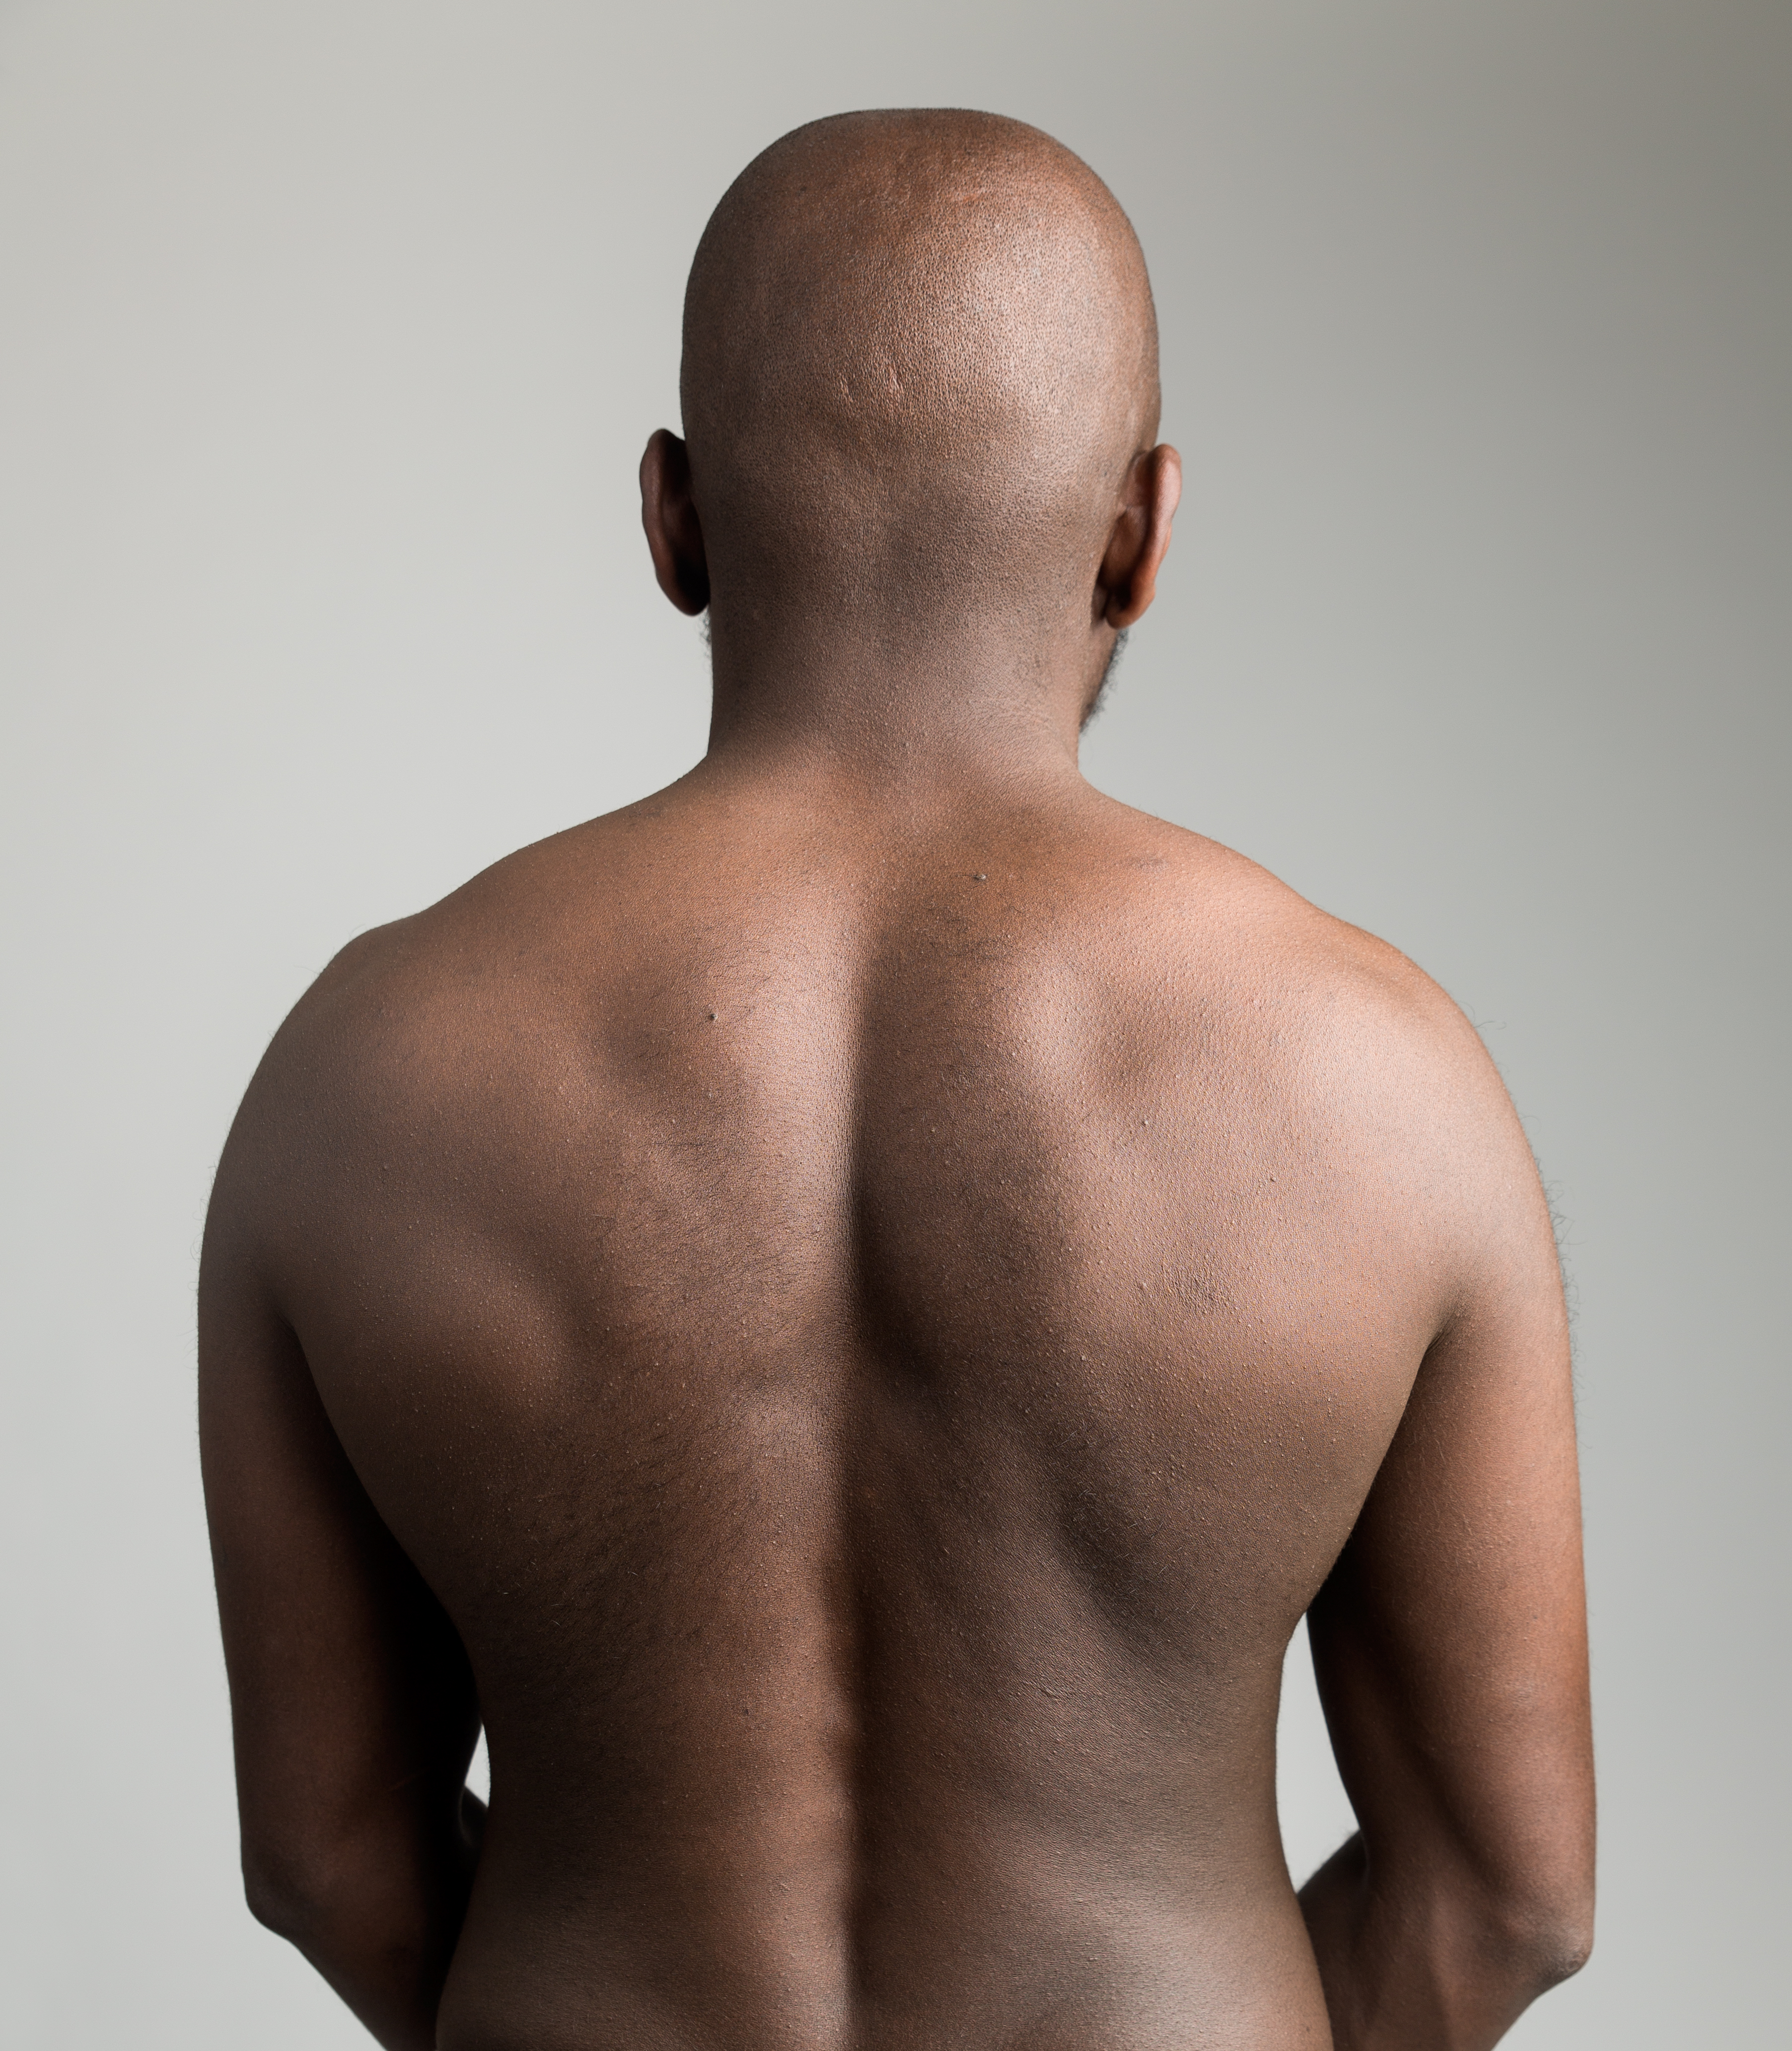 images of hairy backs